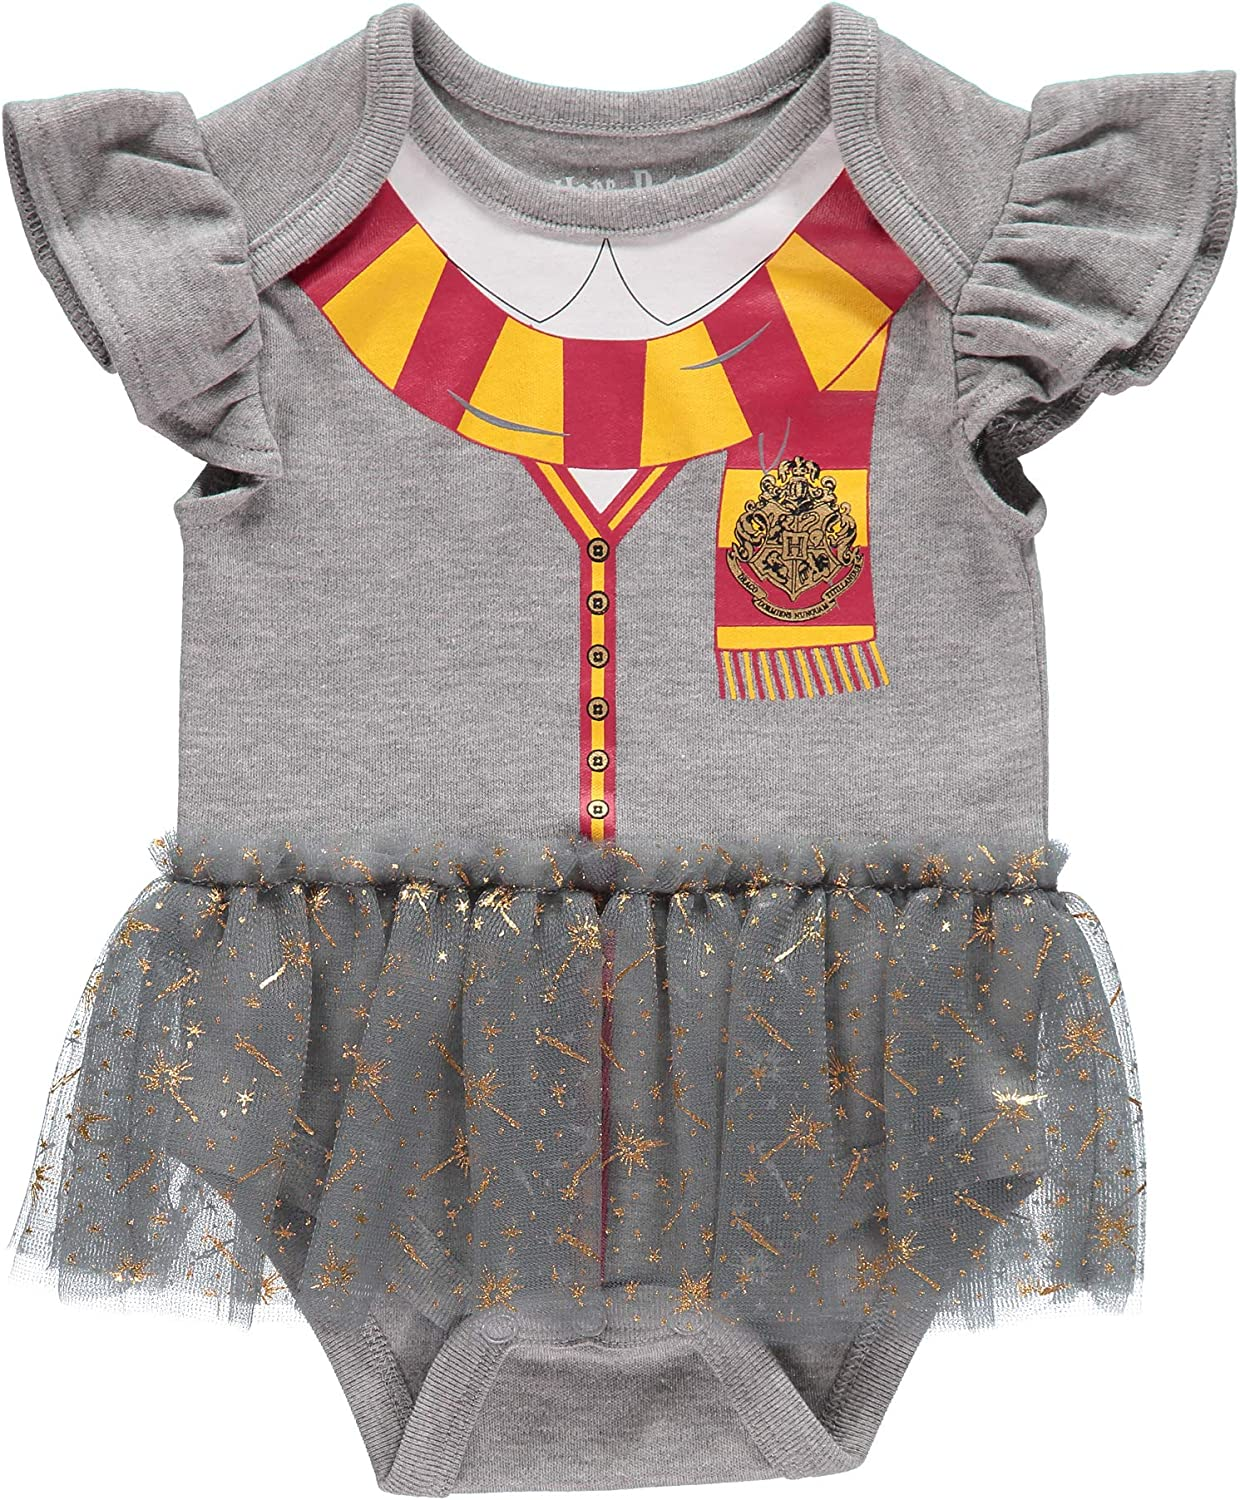 Harry Houston Mall Potter Inventory cleanup selling sale Baby Girl's Creeper Short Sleeve Tutu Bodysuit